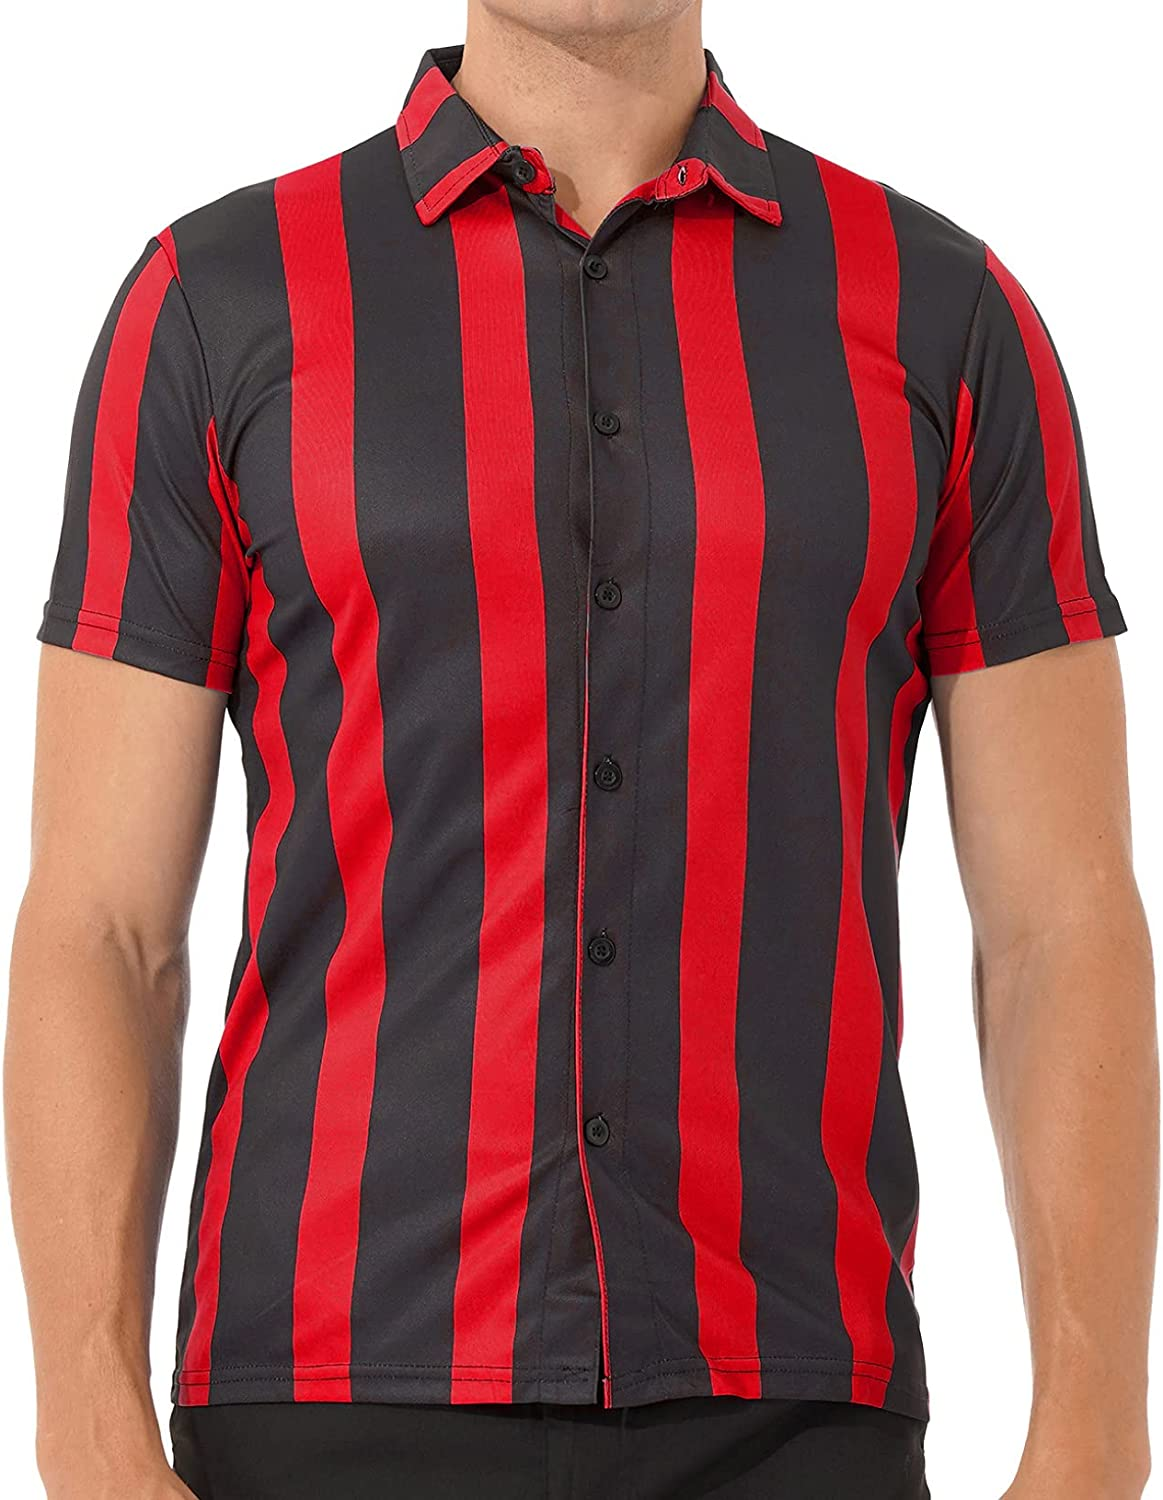 ACSUSS Men's Striped Shirts Casual Short Sleeve Button Down Shirt Loose Fit Dress Shirts